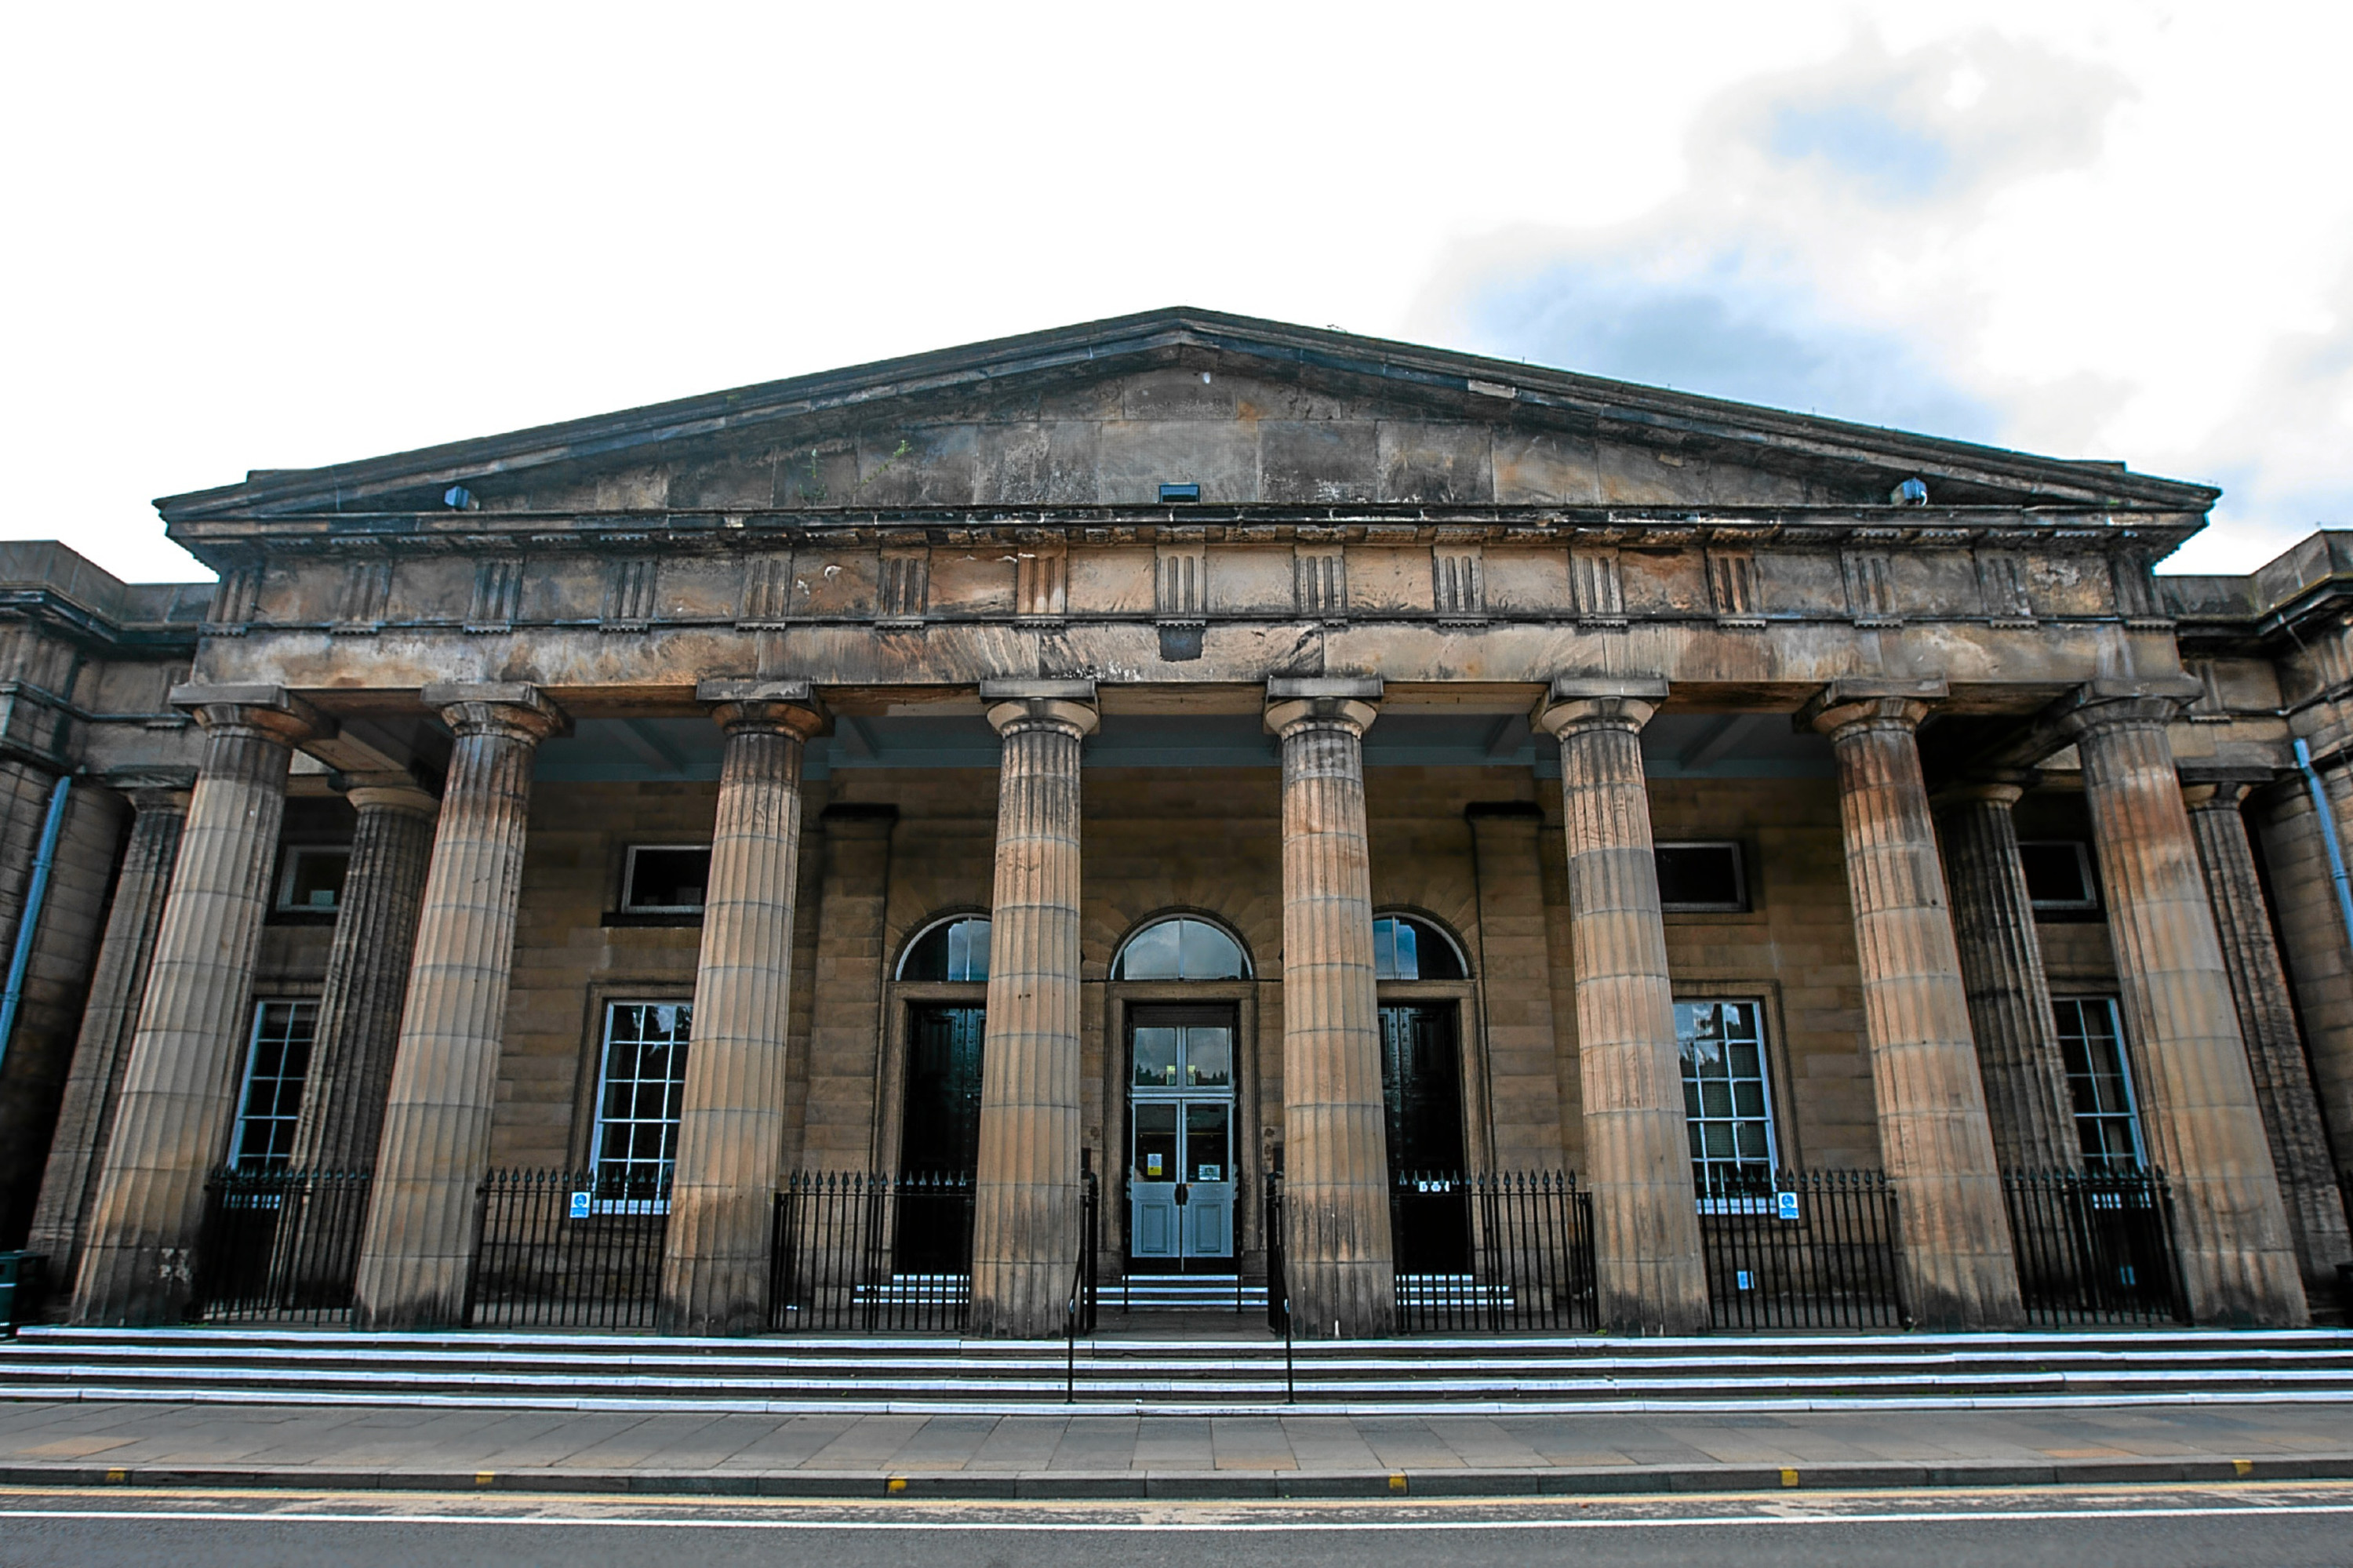 Building exterior of Perth Sheriff Court, Tay Street, Perth.